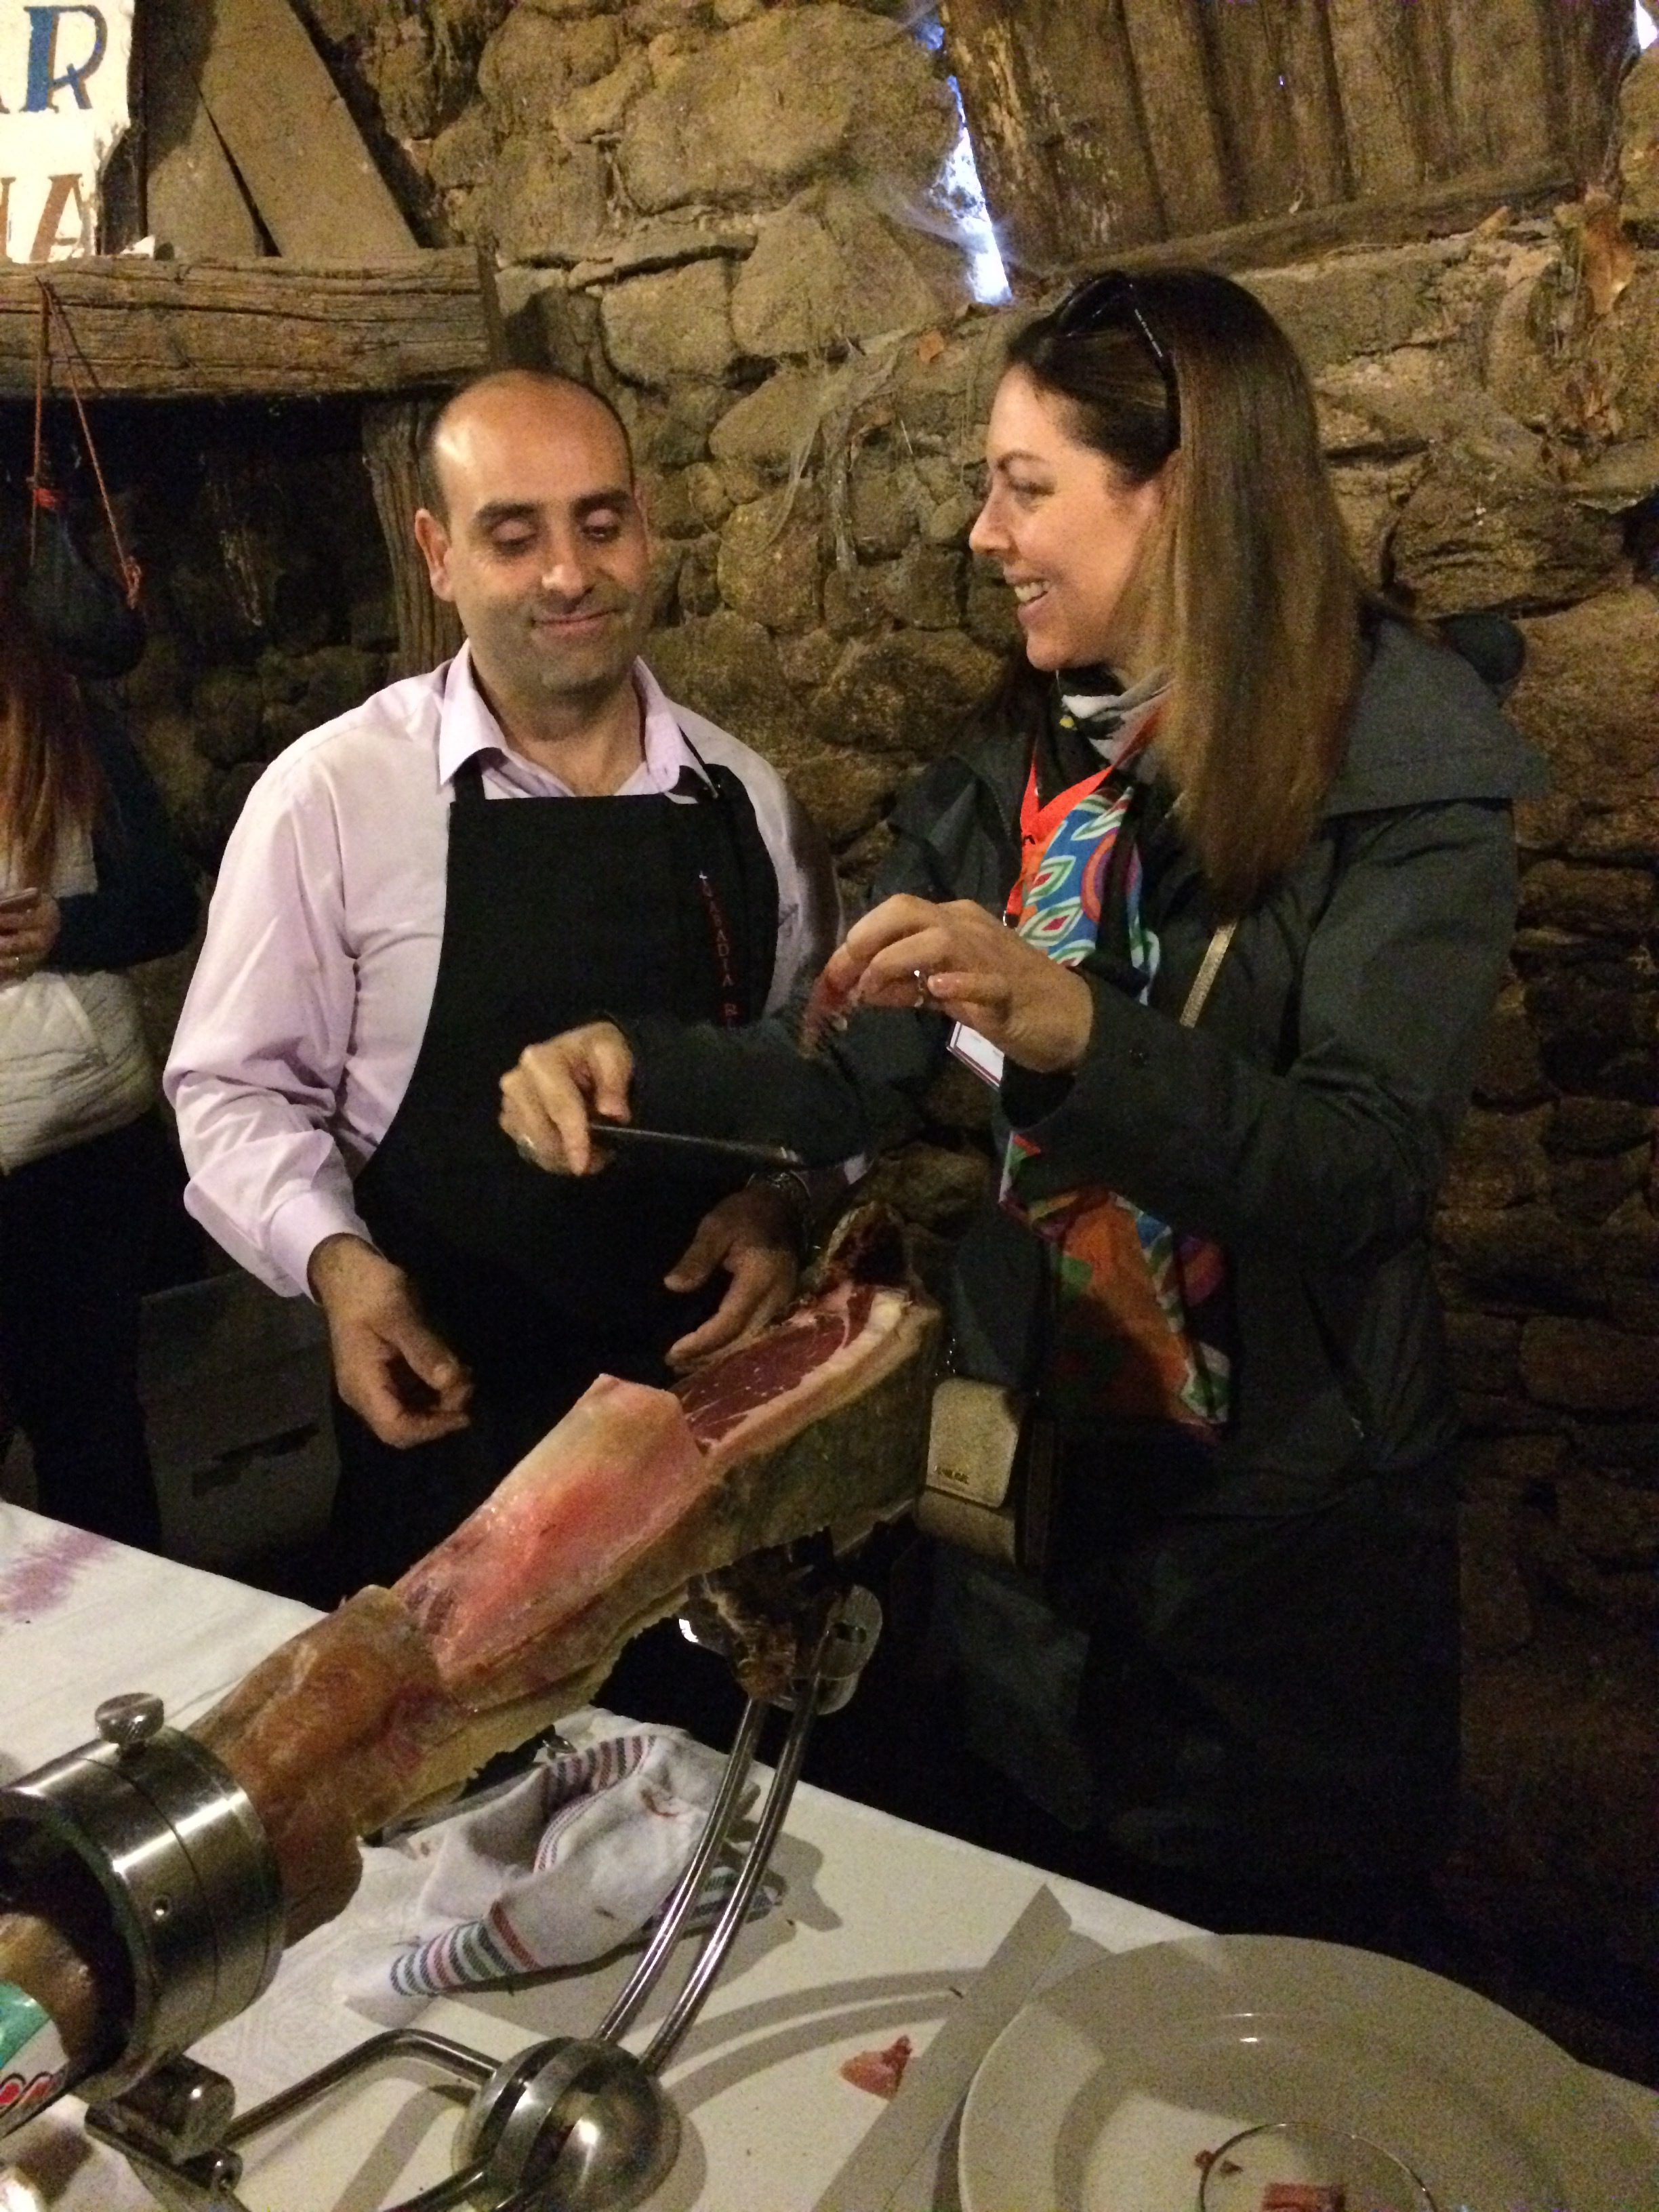 Learning to slice Iberico ham from the master. You can tell by his face how well I did!